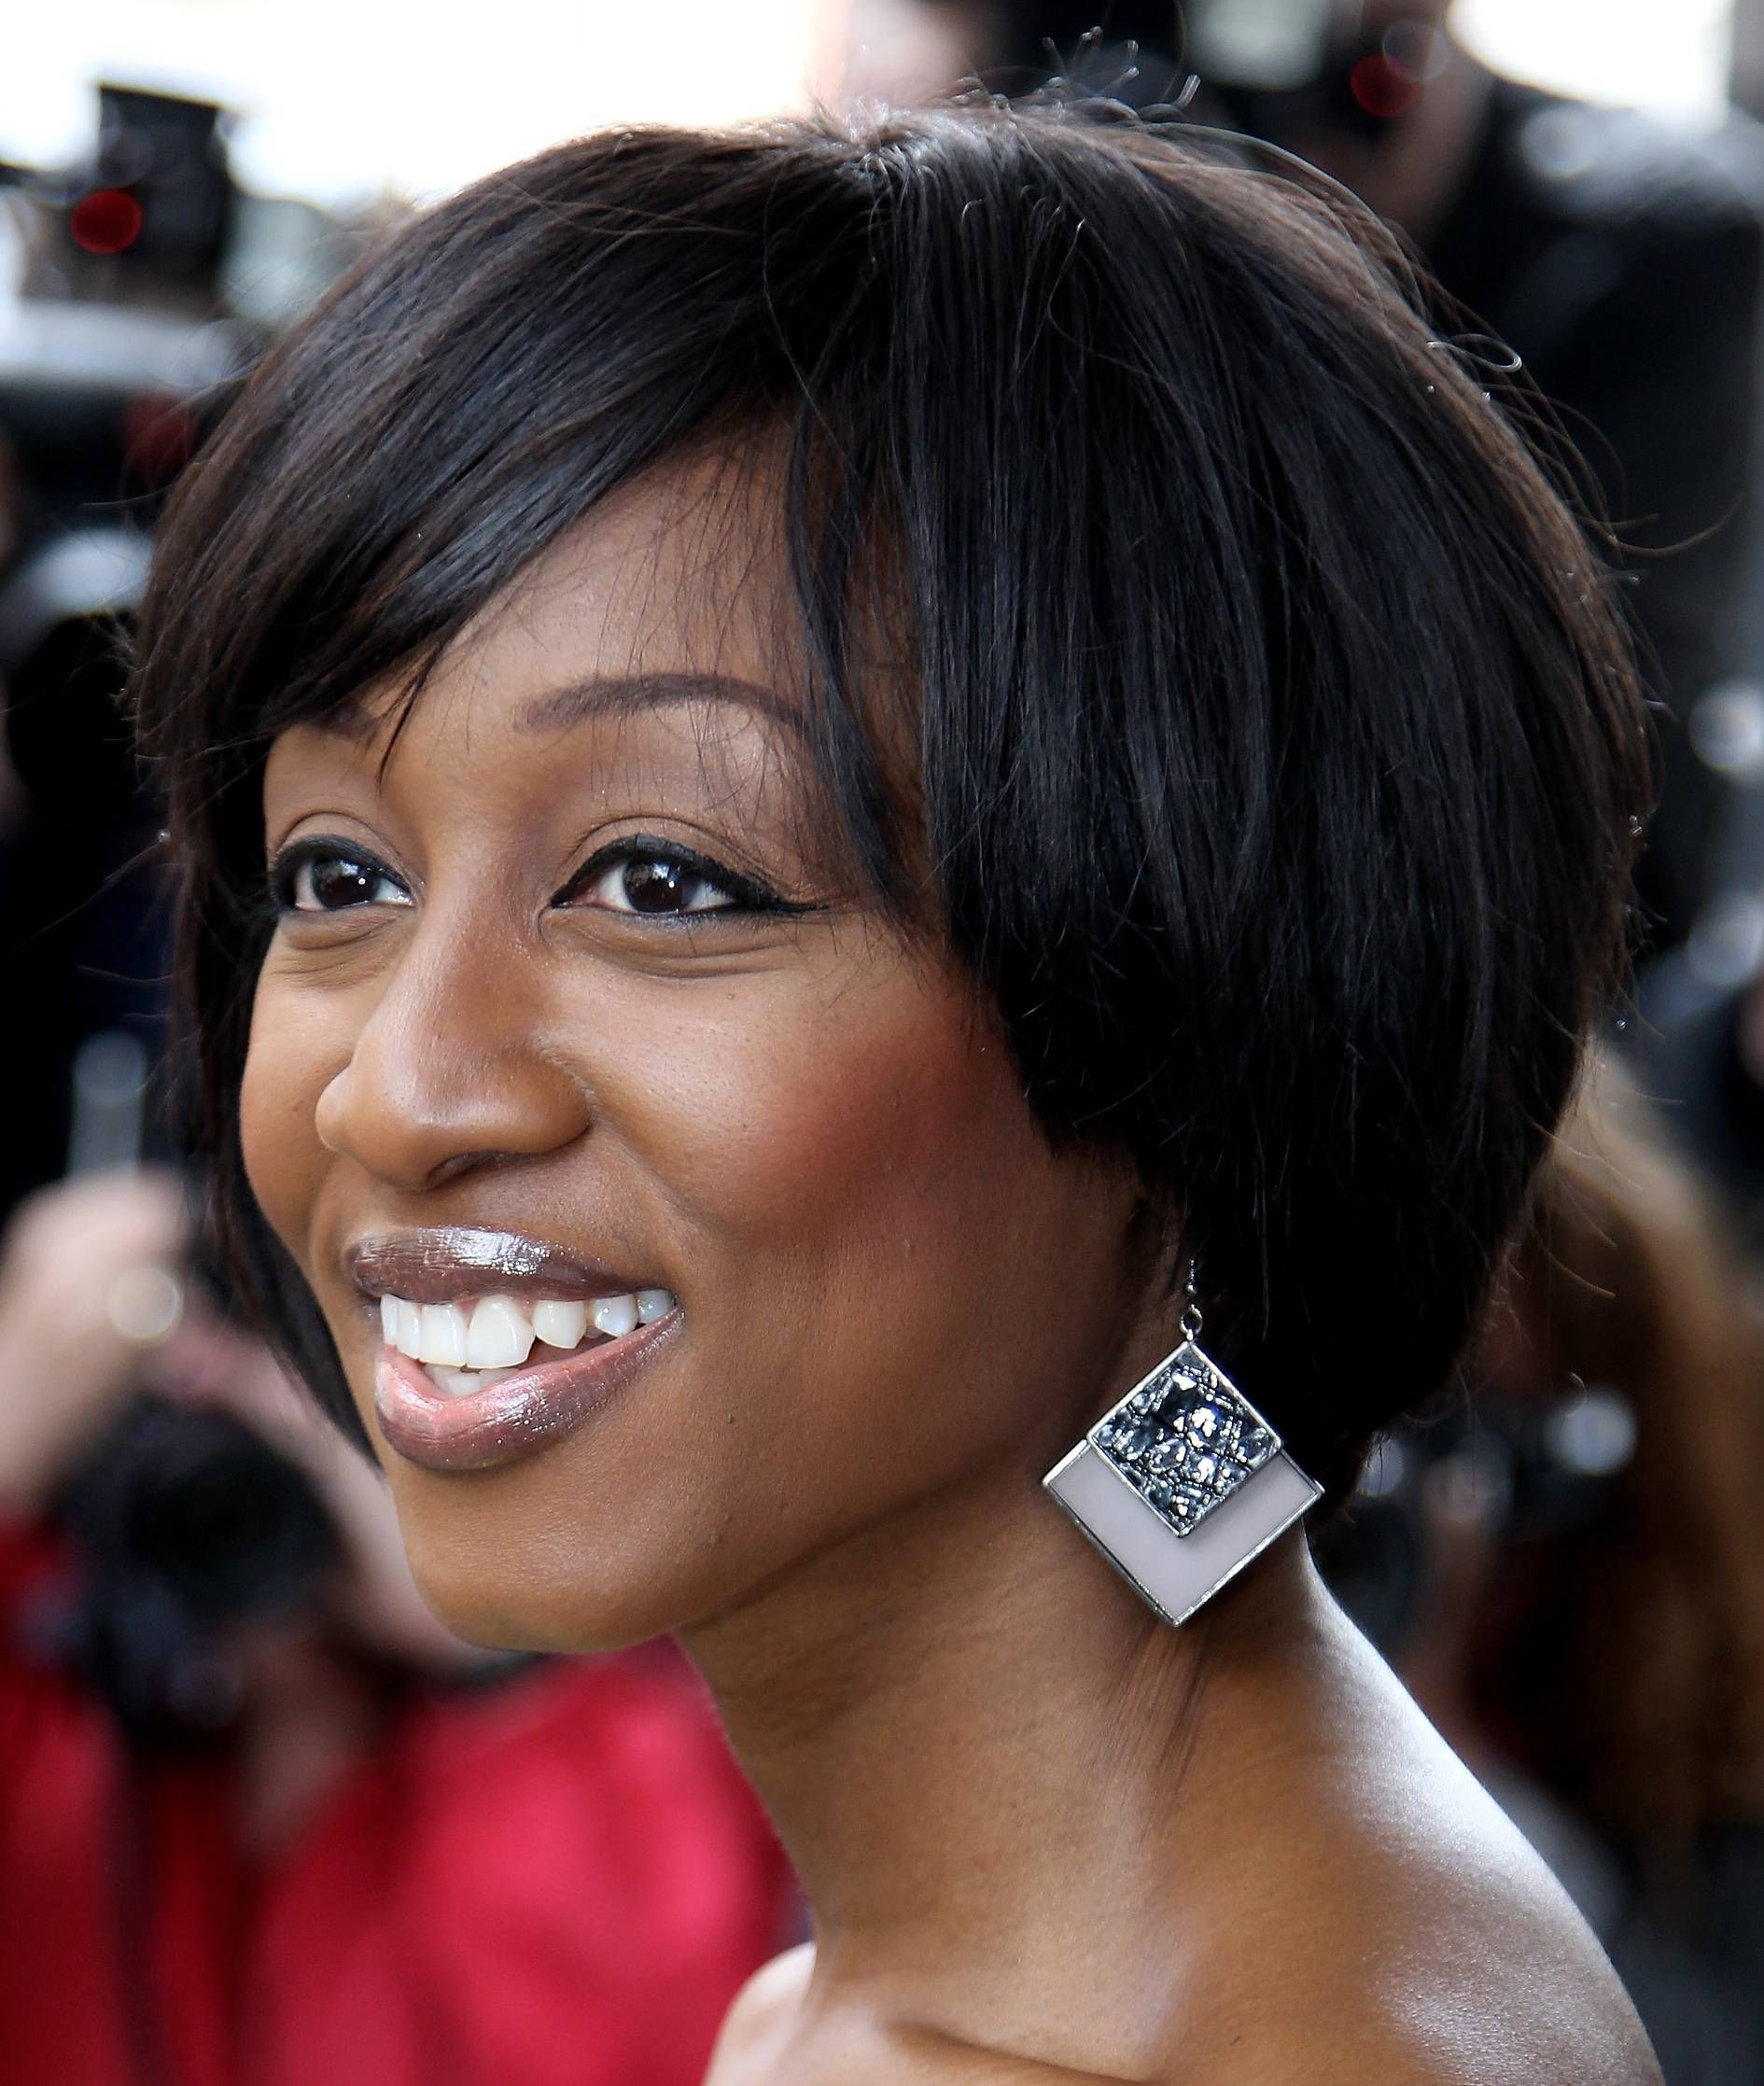 Peachy 1000 Images About Hair Styles On Pinterest Jada Pinkett Smith Short Hairstyles For Black Women Fulllsitofus